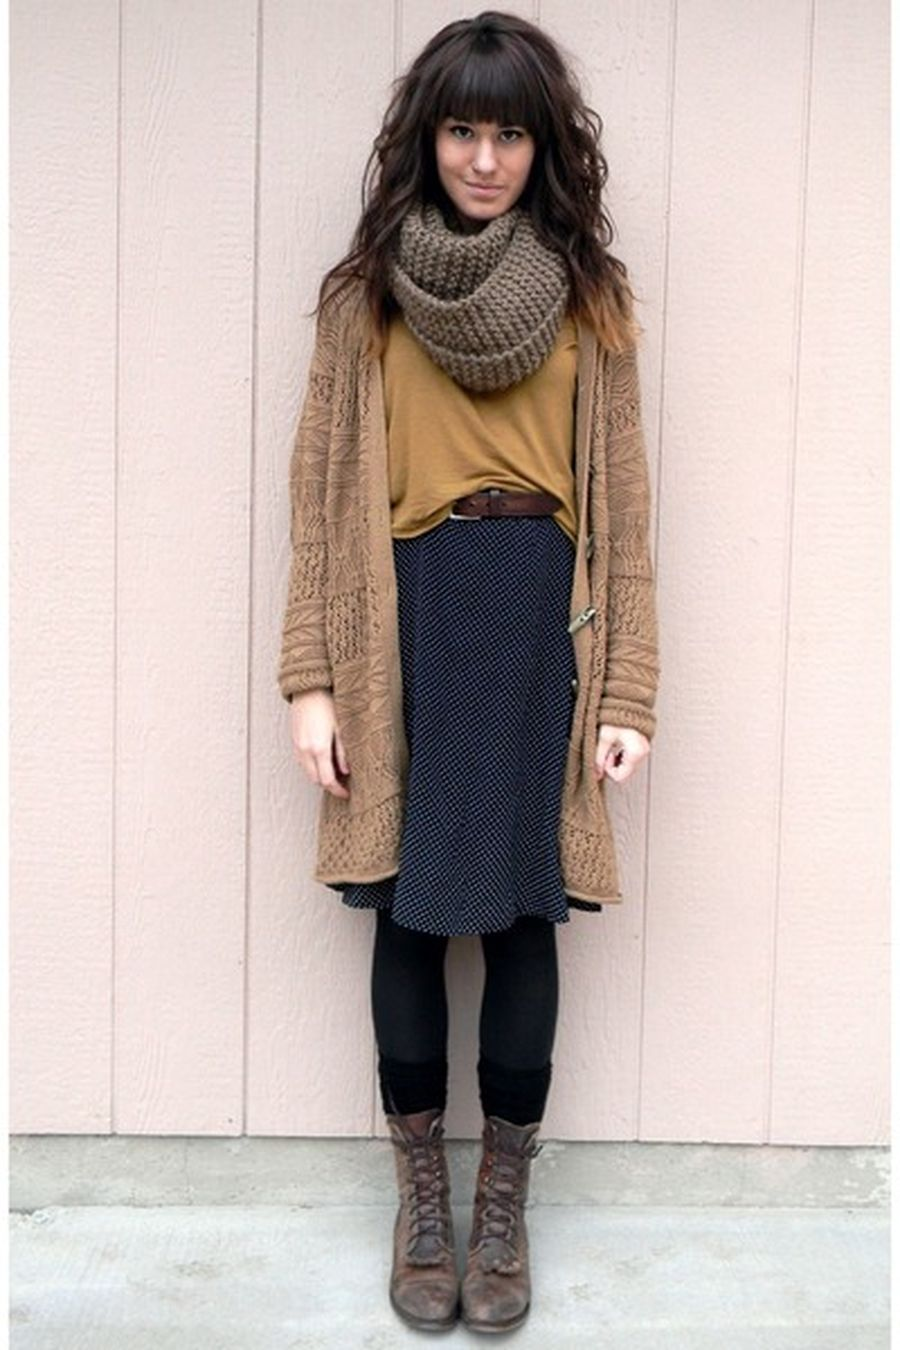 Inspiring skirt and boots combinations for fall and winter outfits 63